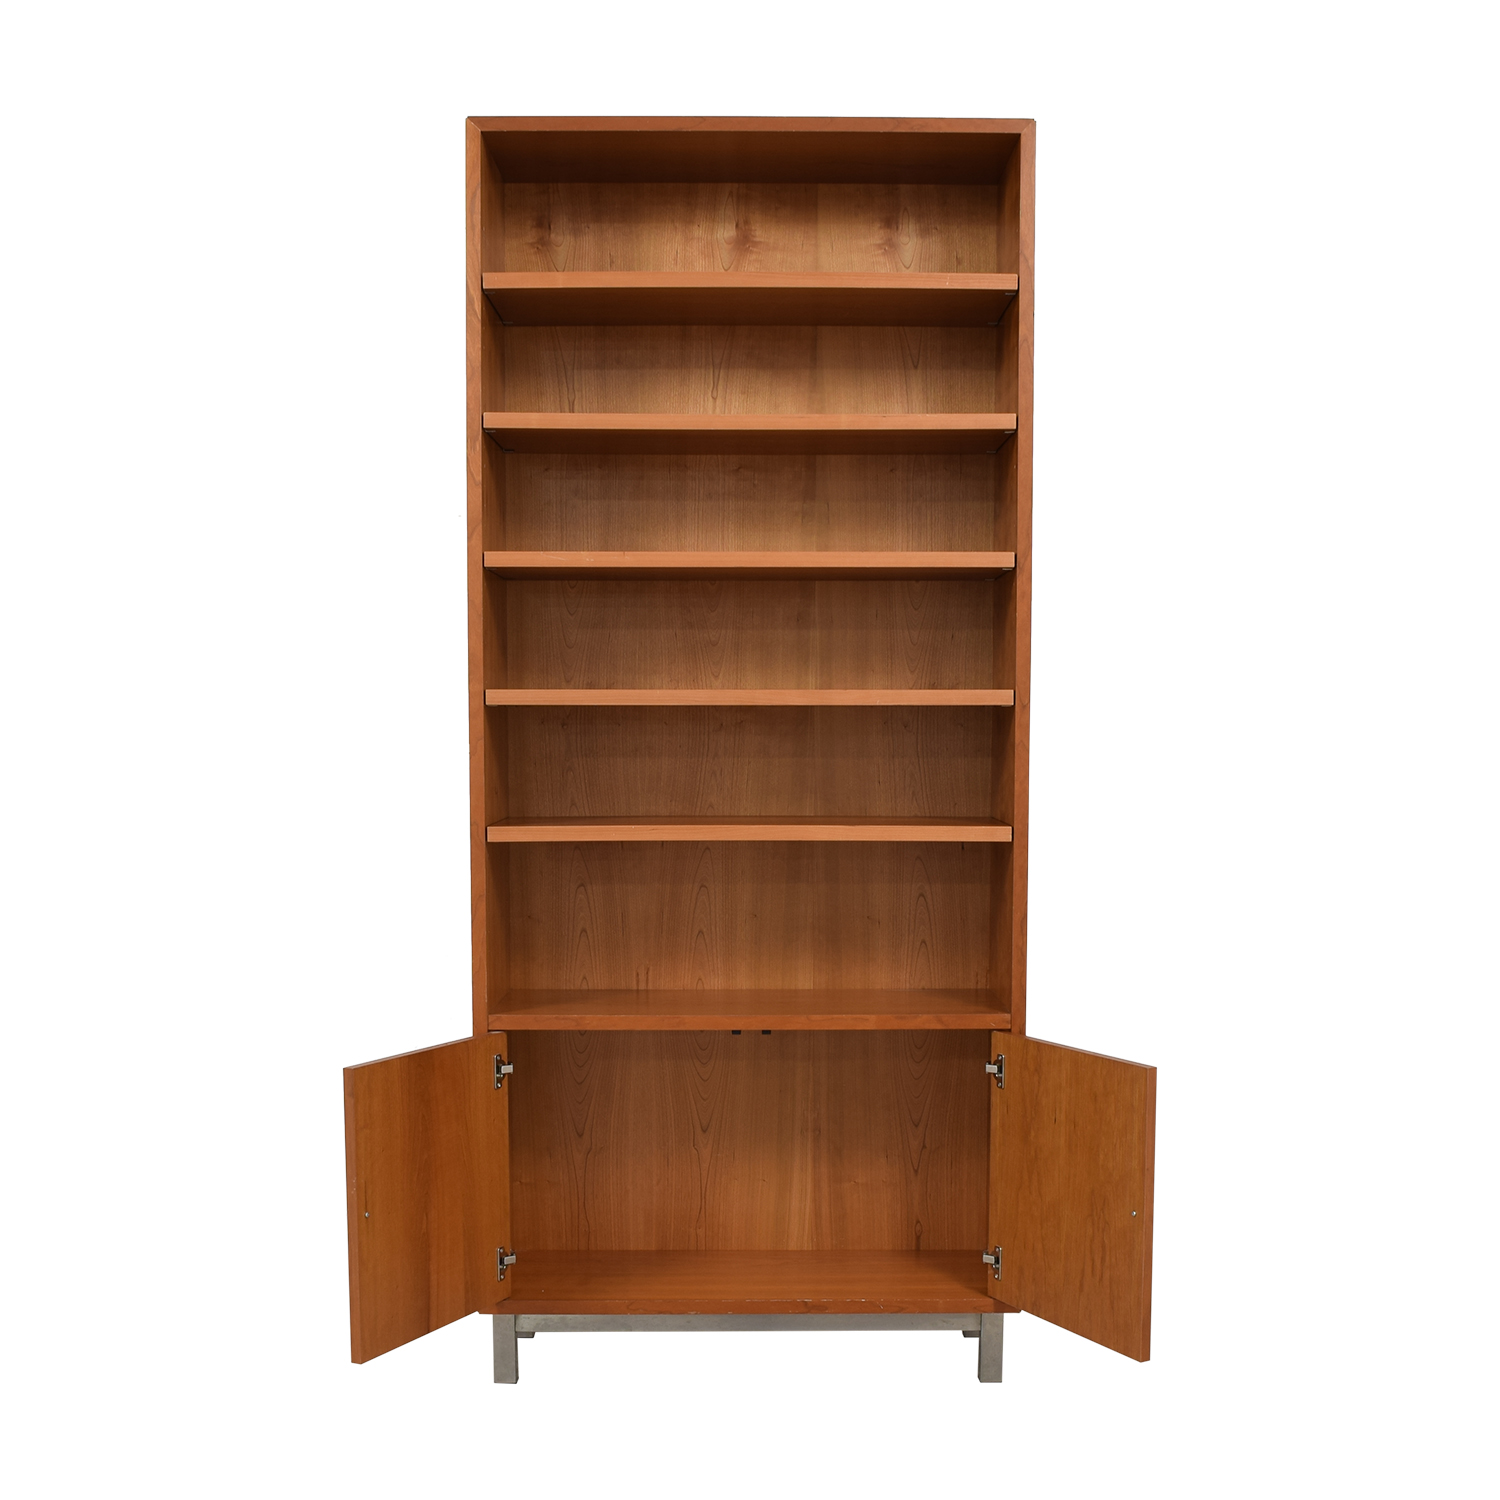 Room & Board Bookcase / Bookcases & Shelving